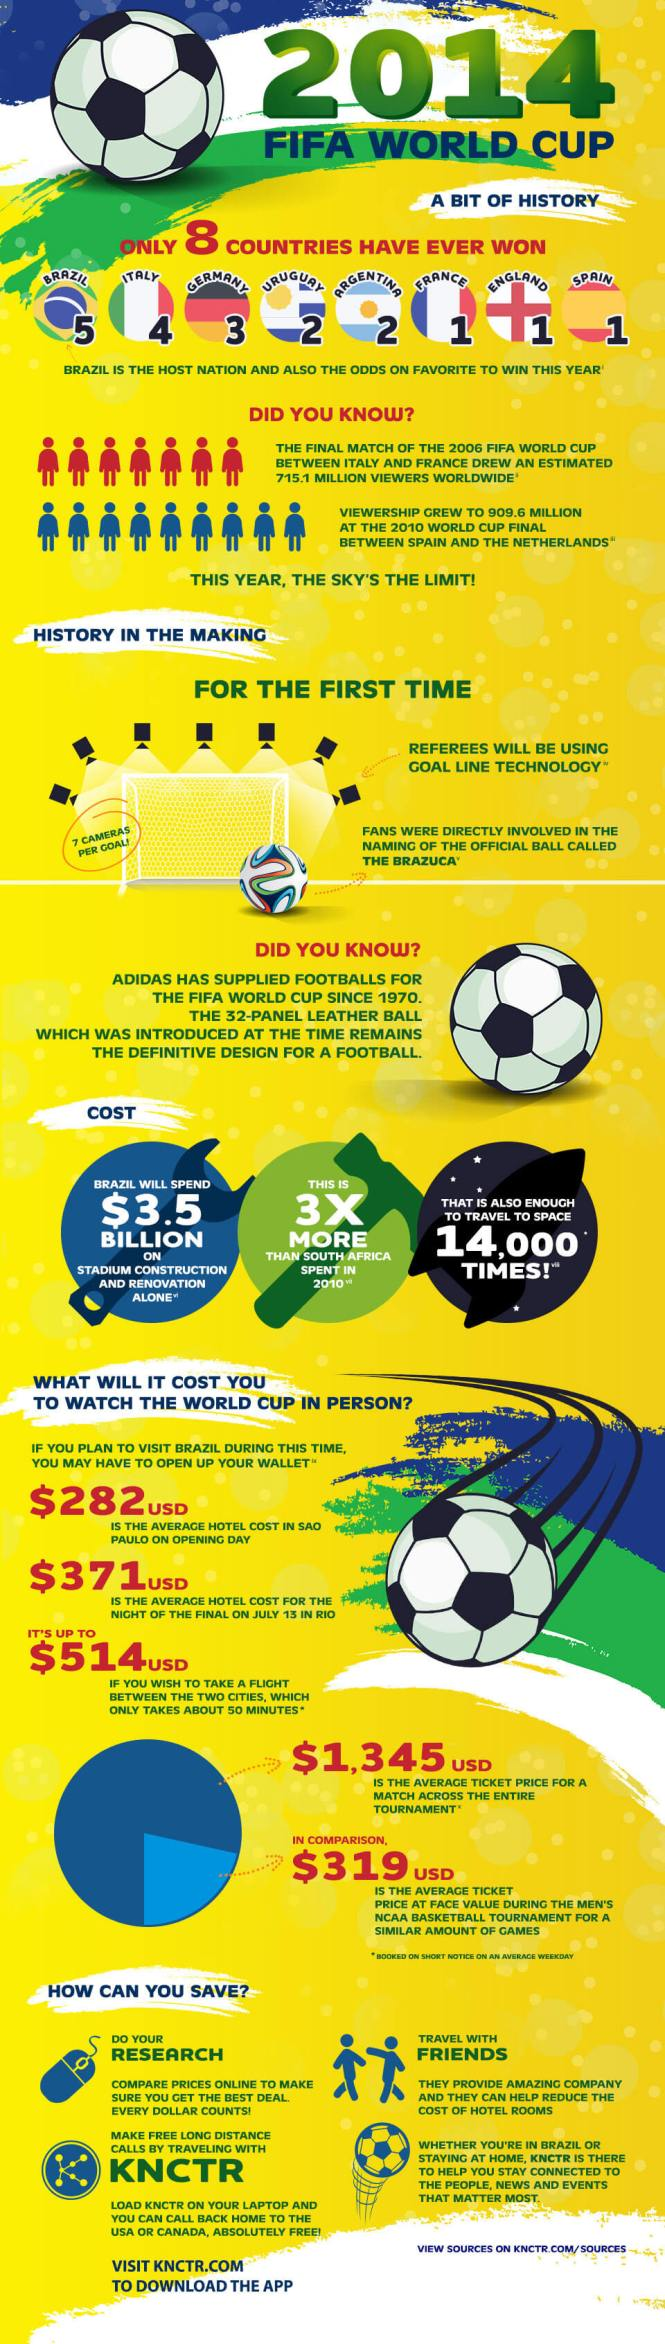 2014 Fifa World Cup Facts